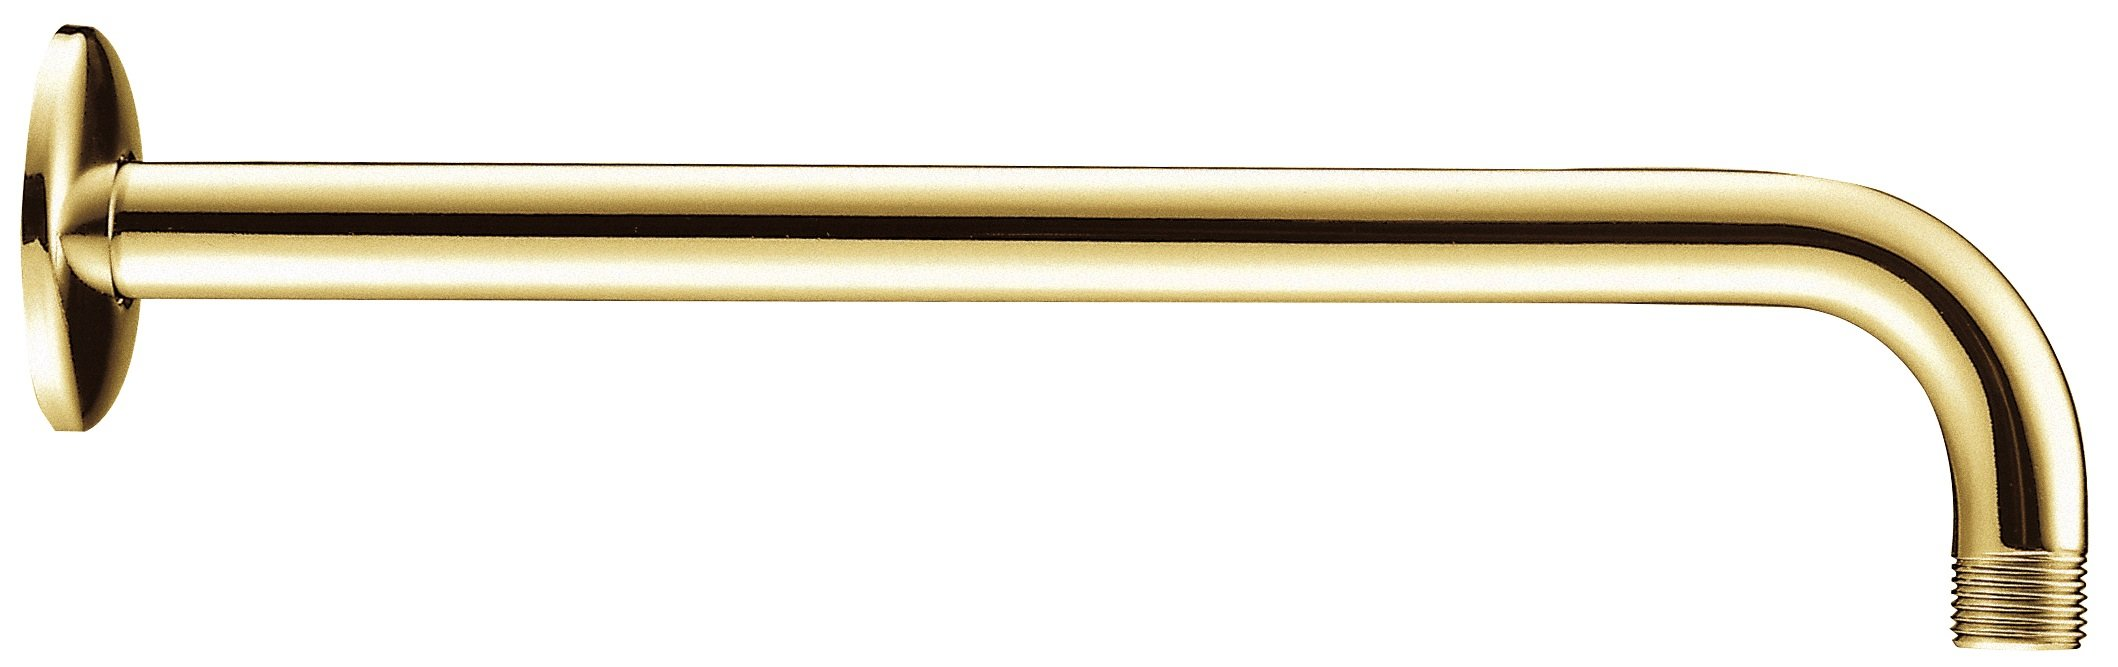 Danze D481027PBV Right Angle Showerarm with Flange, 15-Inch, Polished Brass PBV